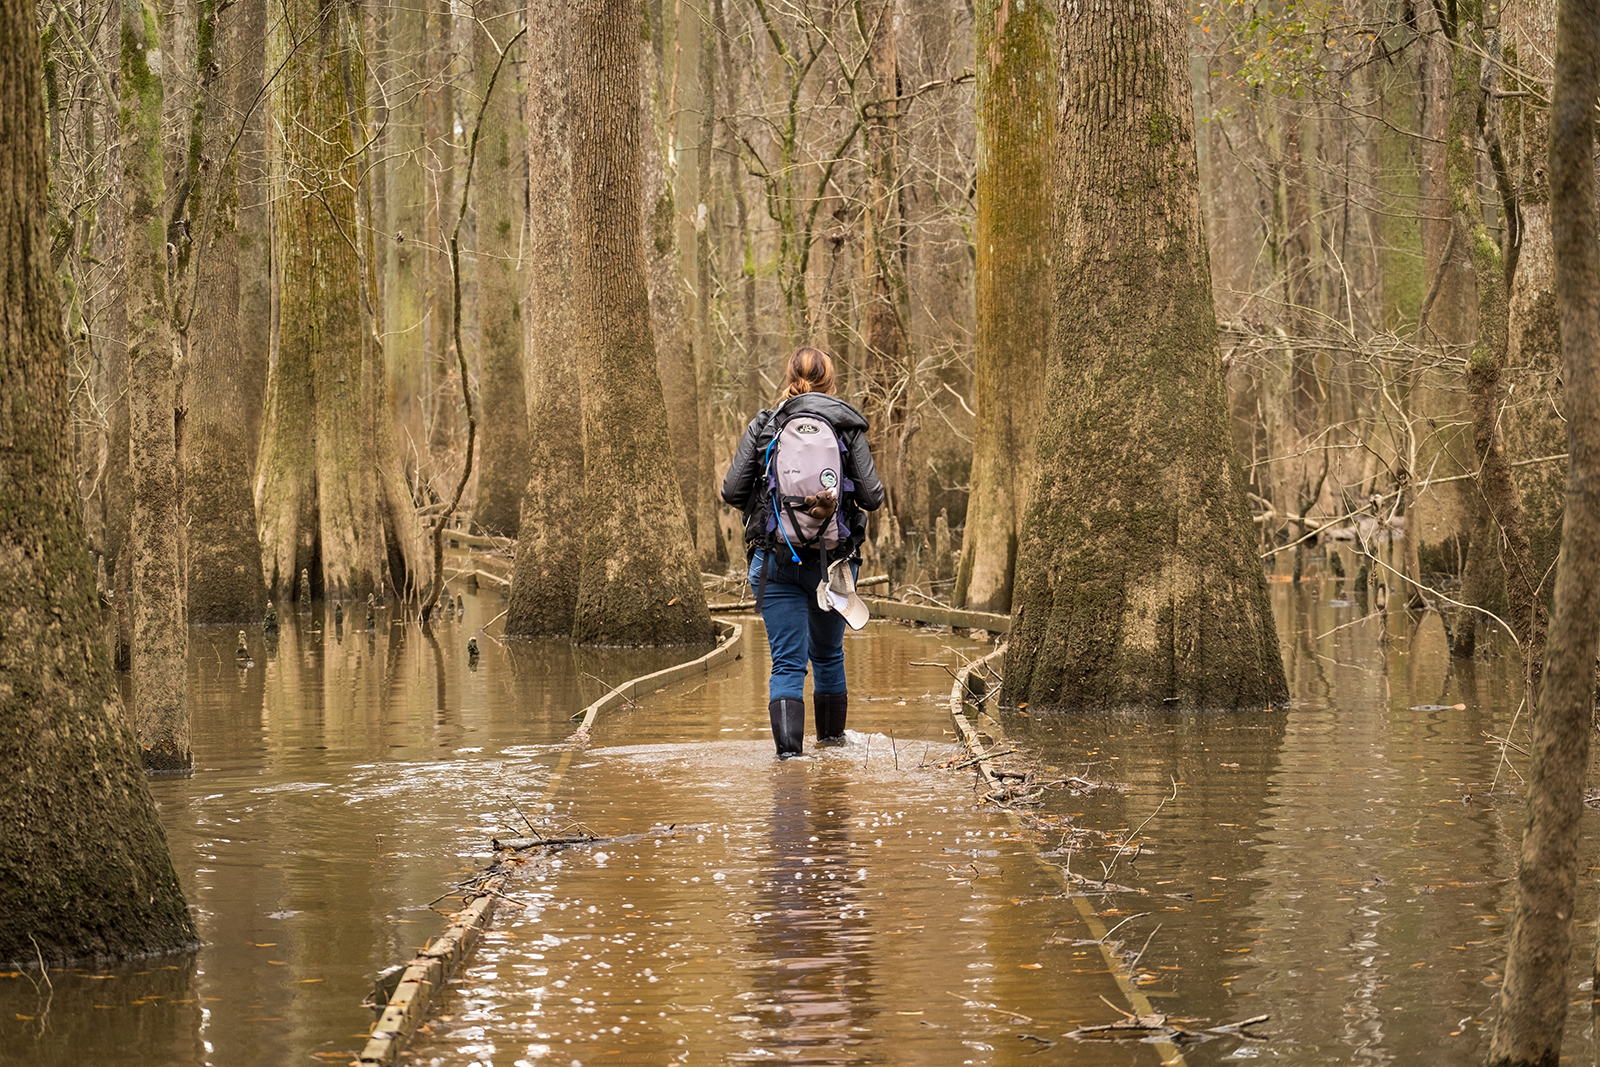 Stomping through a flooded forest of naked cypress trees in Congaree National Park in South Carolina